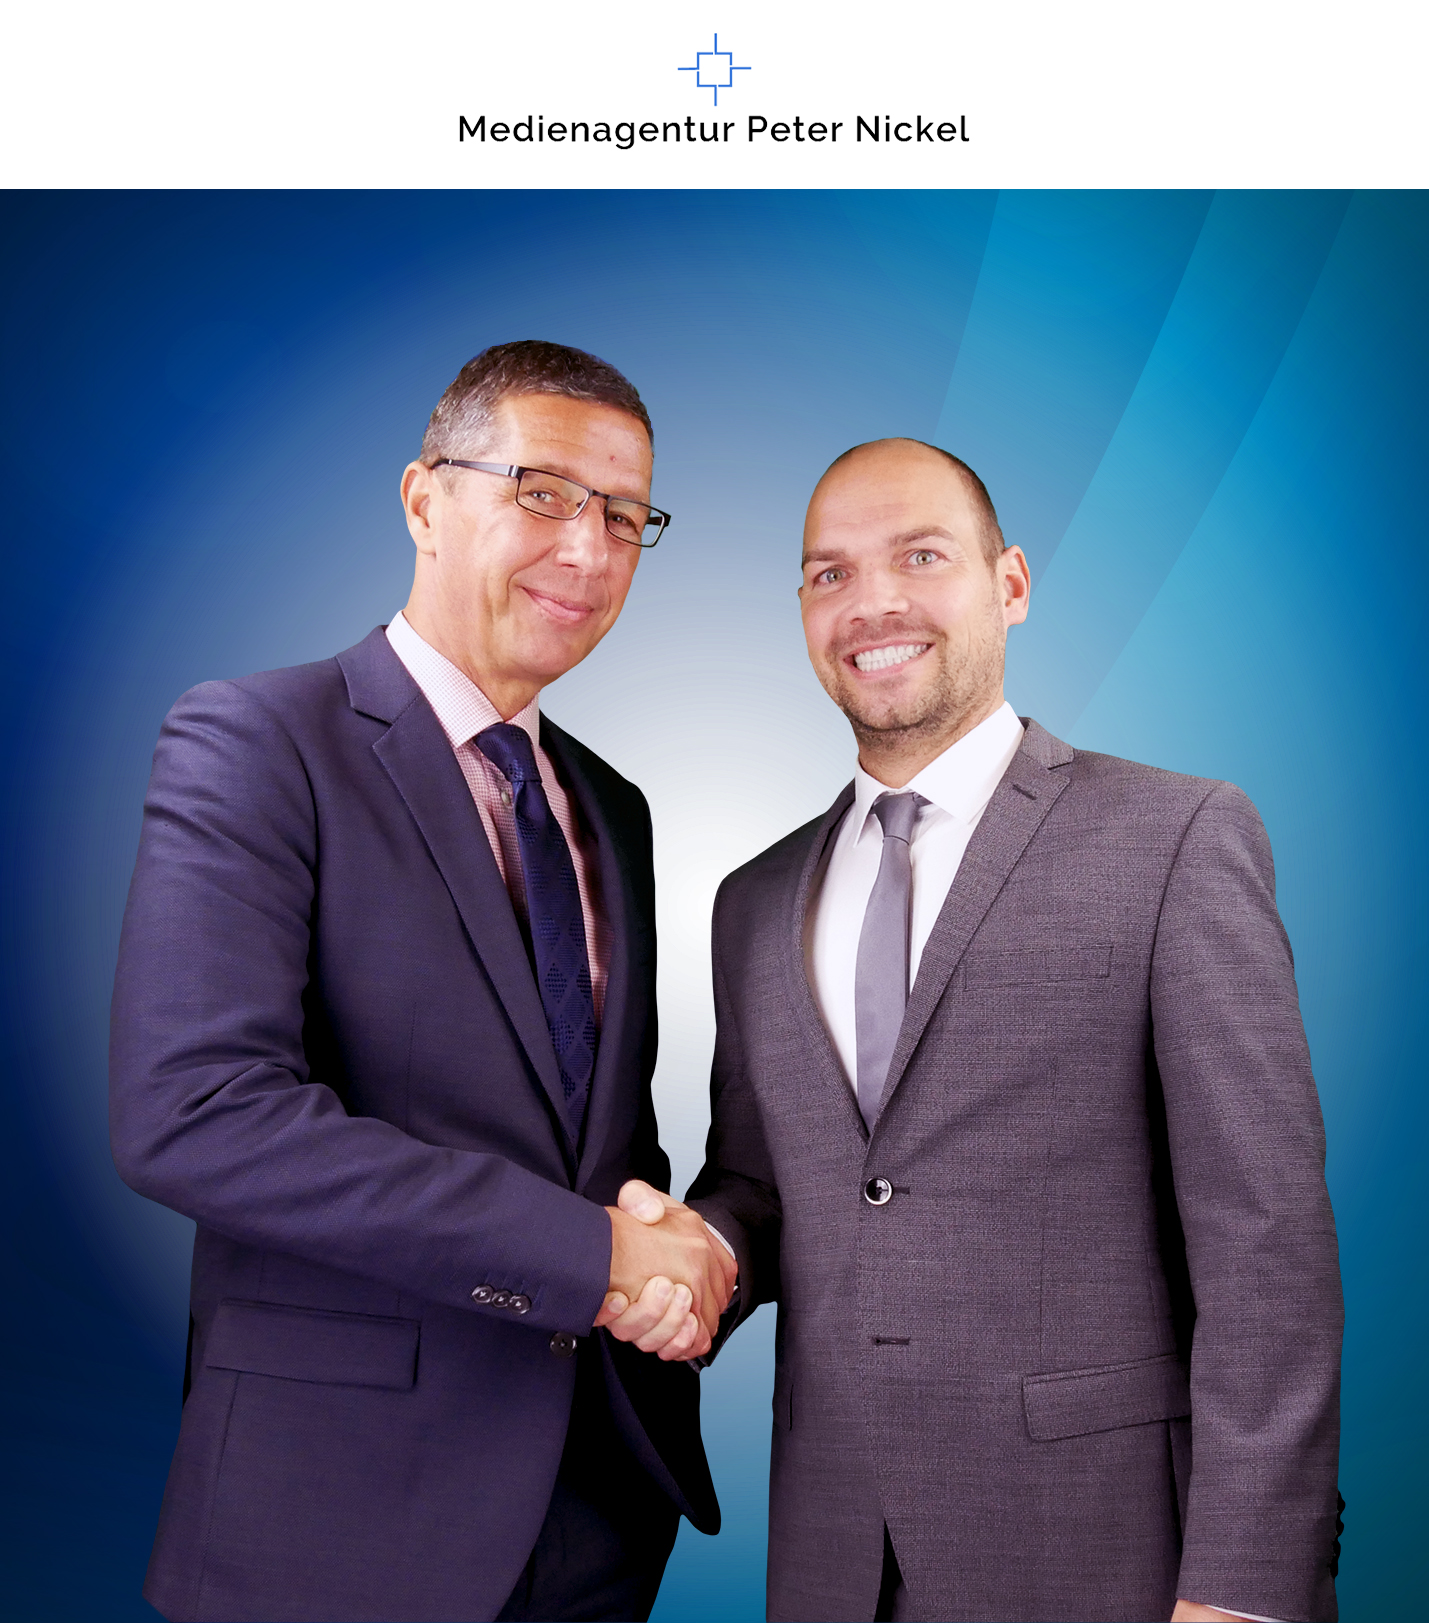 Generationswechsel Medienagentur Peter Nickel